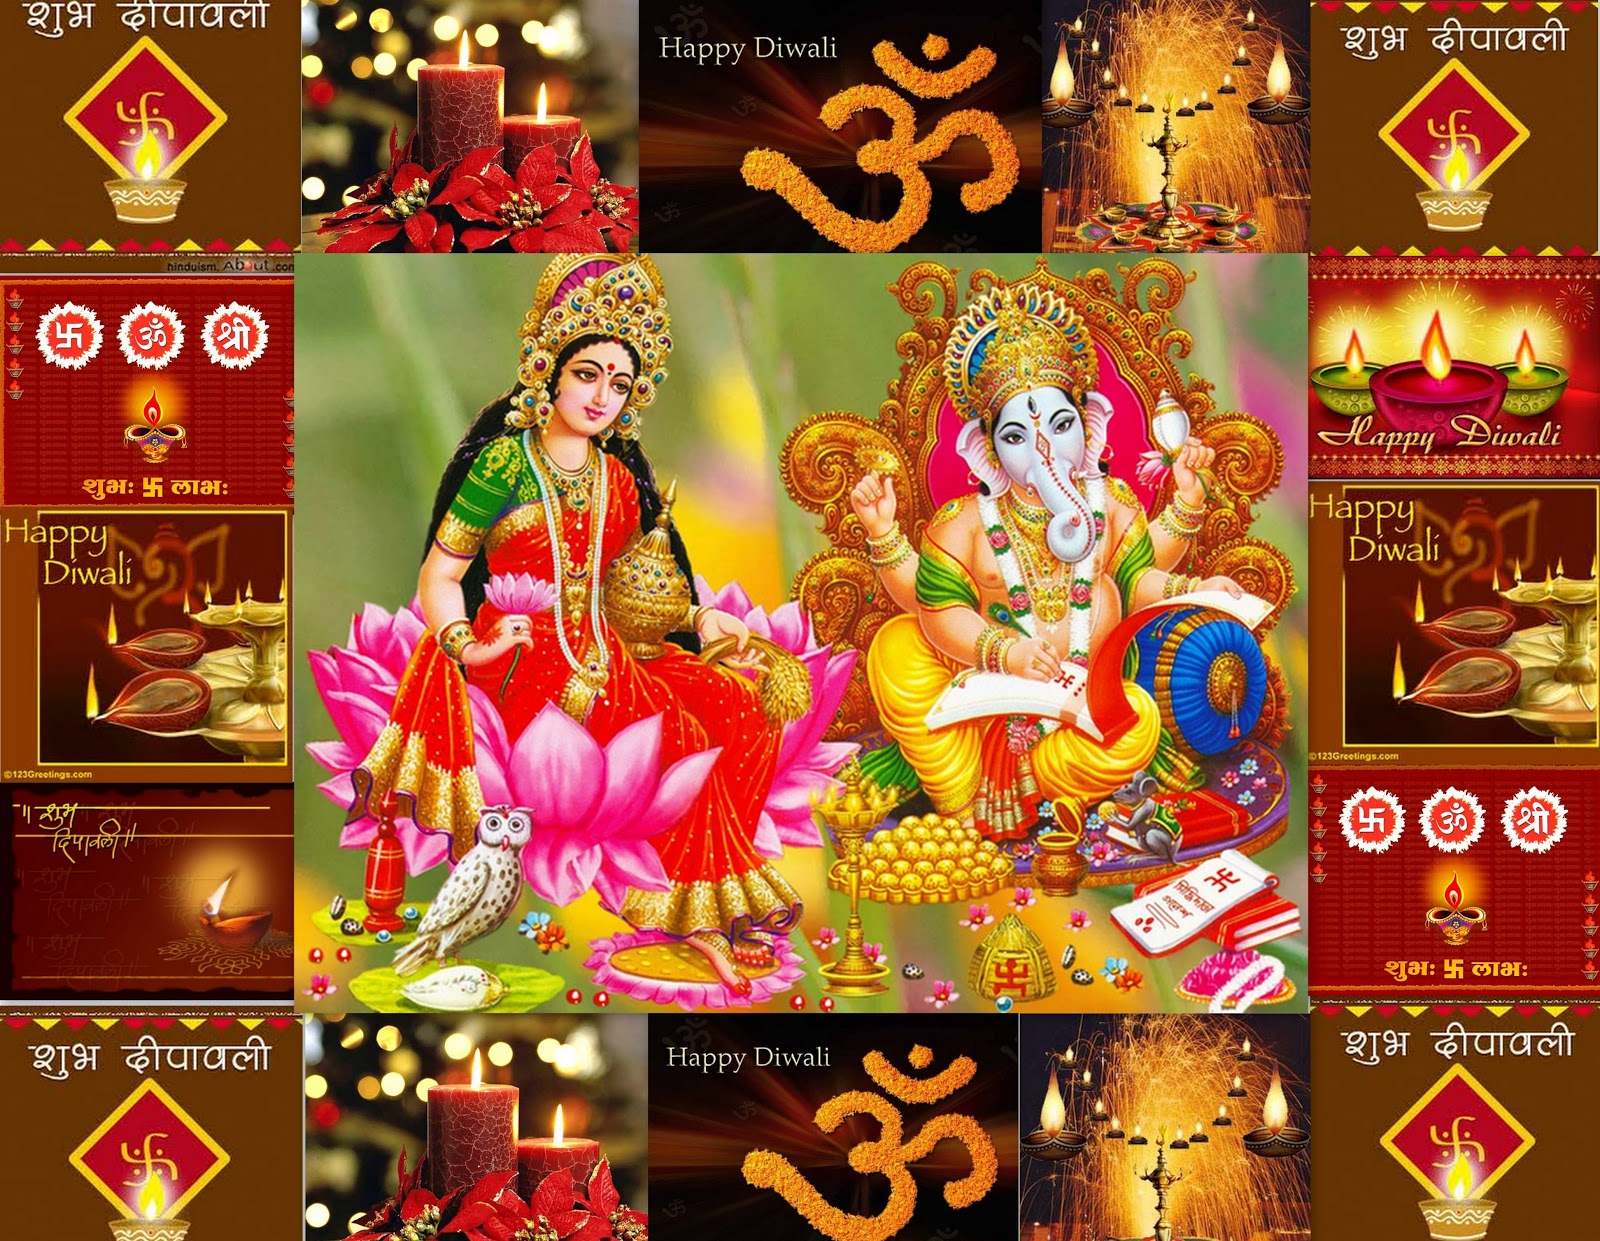 diwali lakshmi puja aarti hindi english laxmi puja vidhi aarti diwali lakshmi puja aarti hindi english laxmi puja vidhi aarti 2015